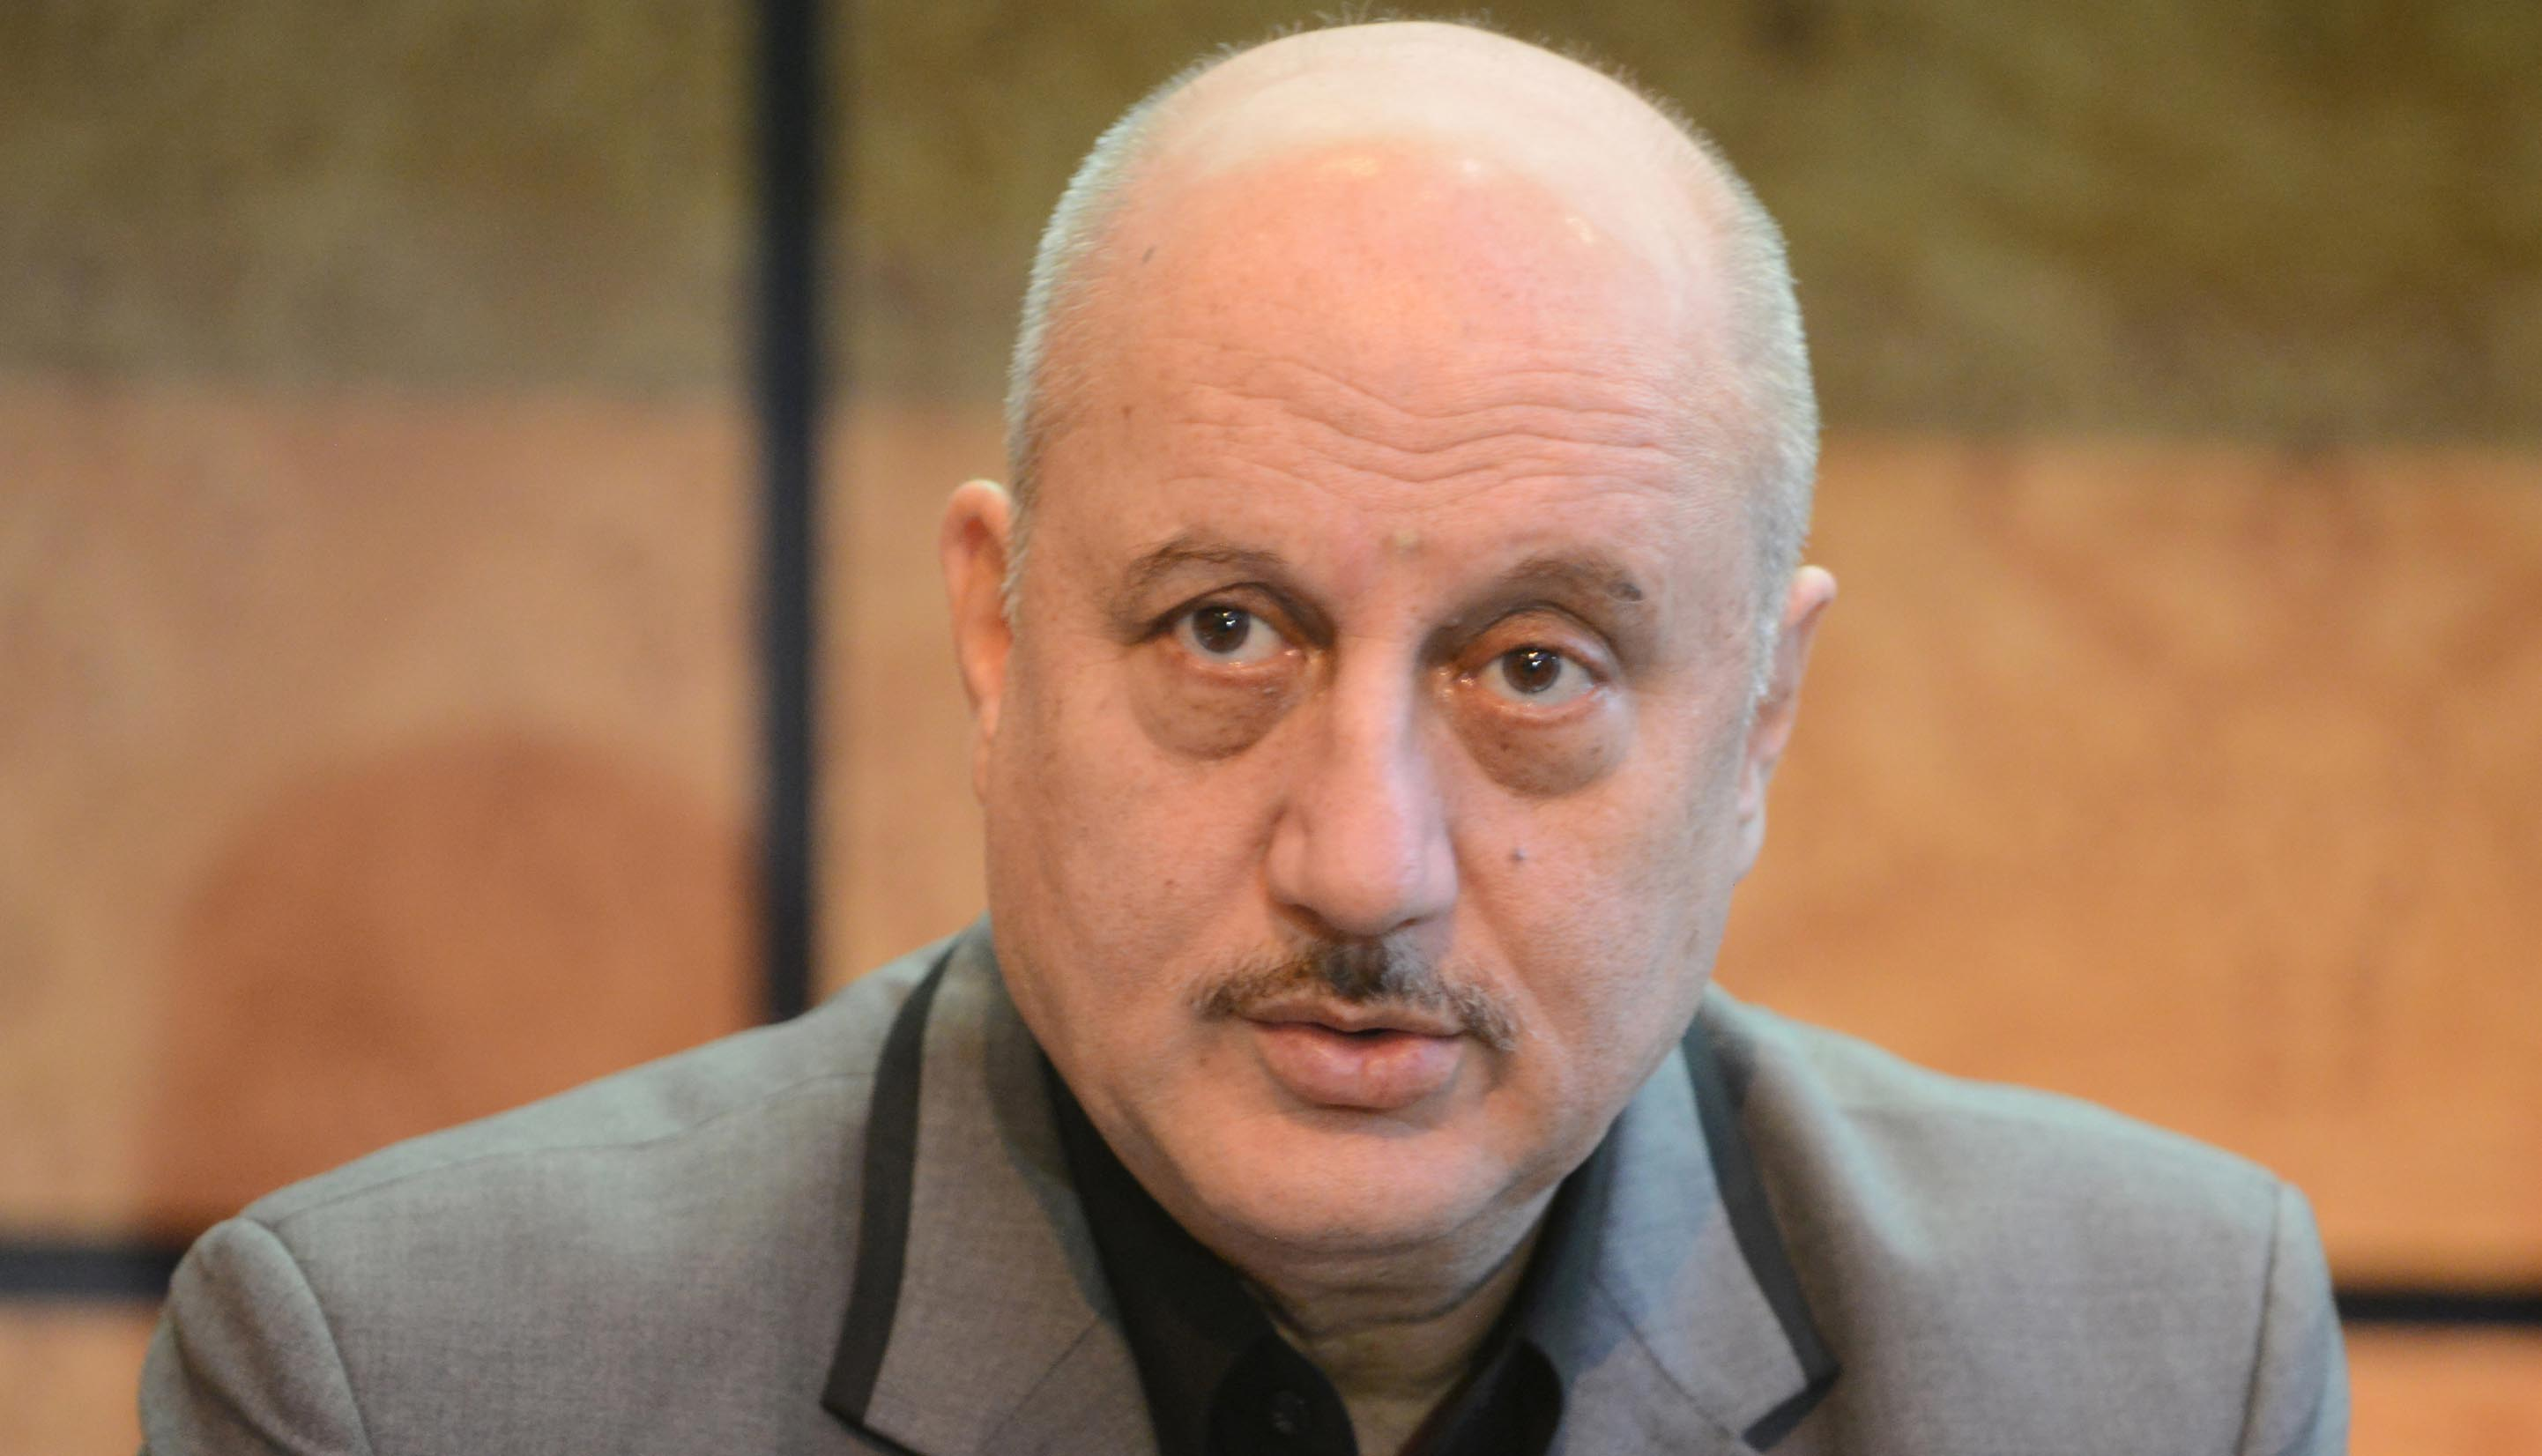 Anupam Kher Net Worth 2021 In Indian Rupees